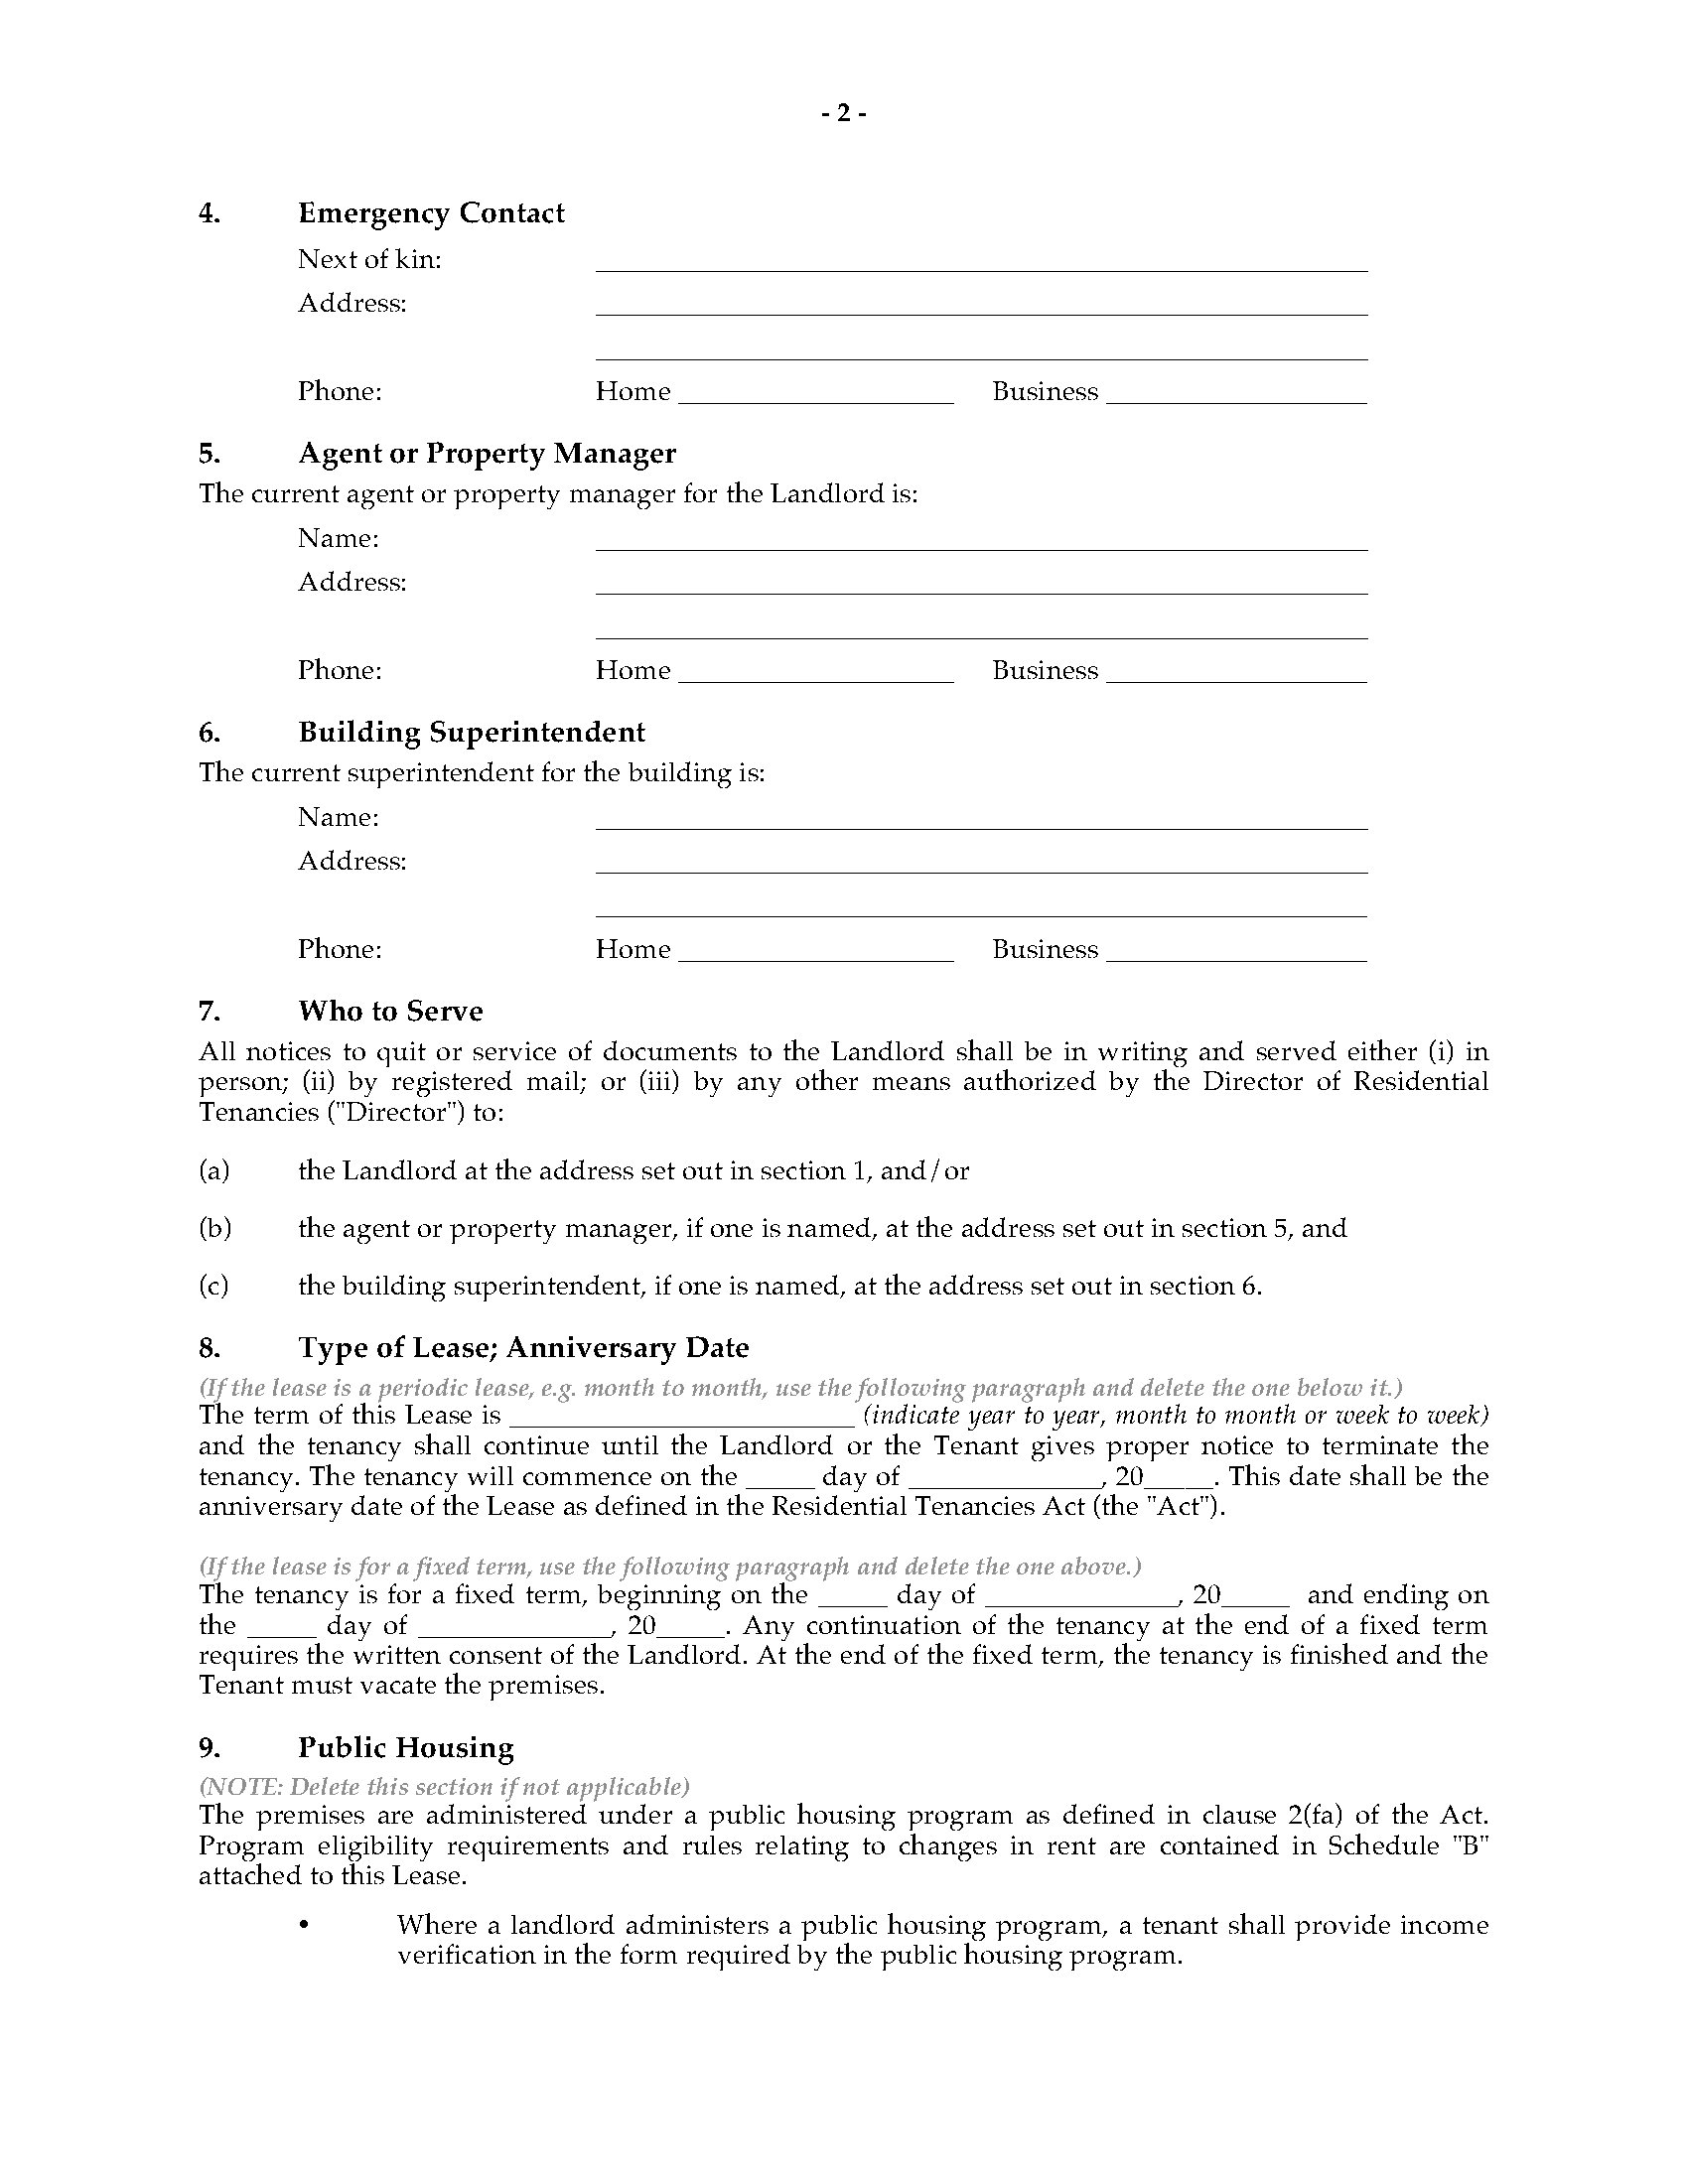 Nova scotia residential lease tenancy agreement legal forms and picture of nova scotia residential lease tenancy agreement platinumwayz